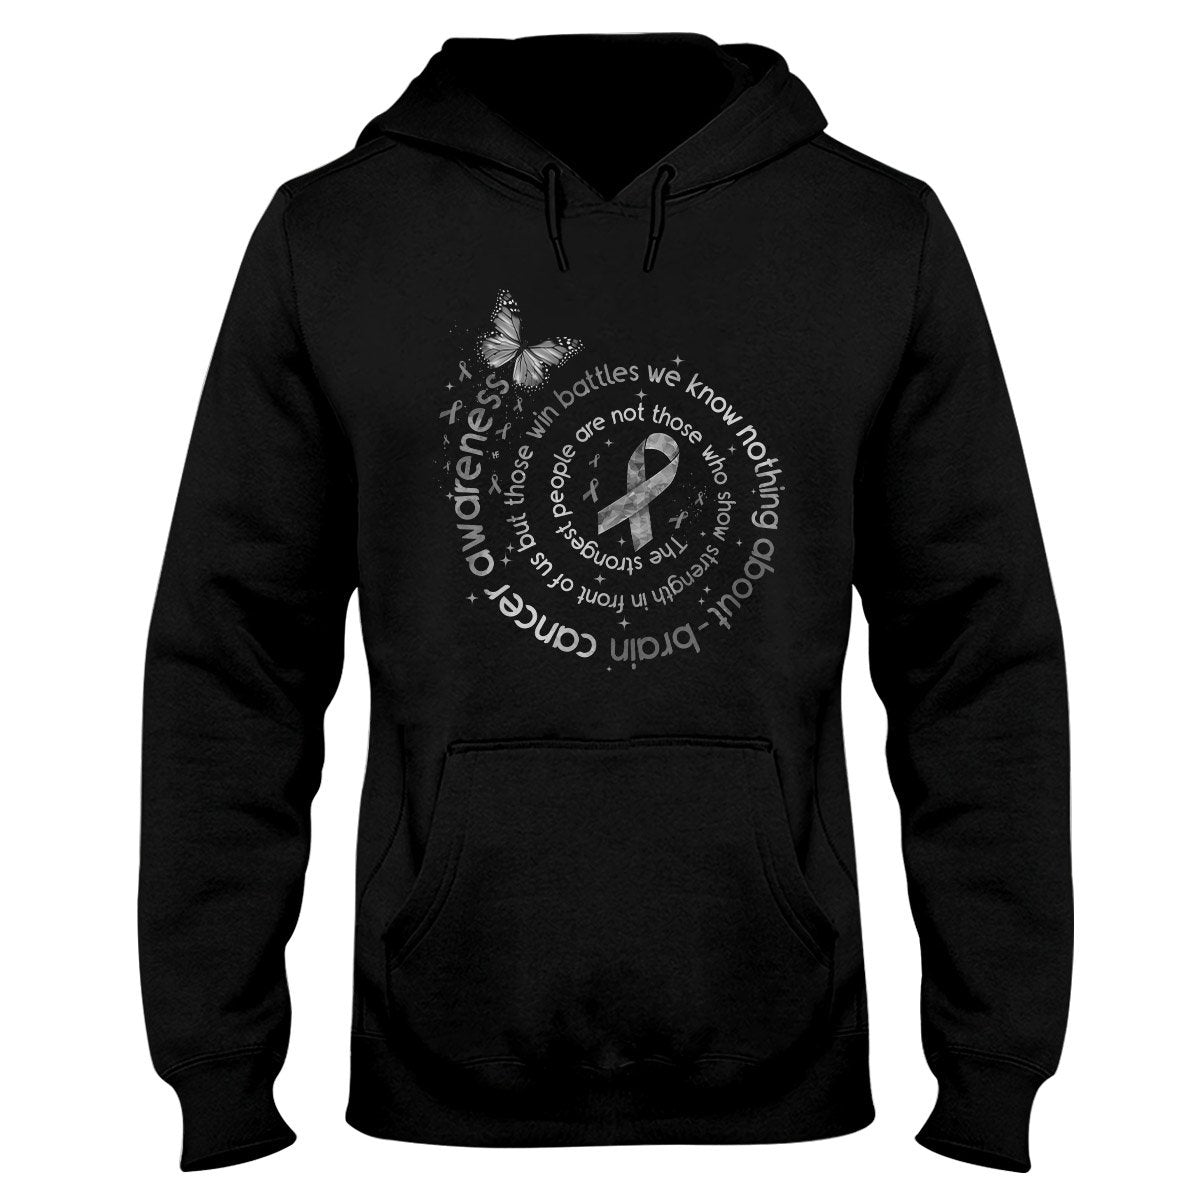 The Strongest People Brain Cancer Awareness EZ24 3012 Hoodie